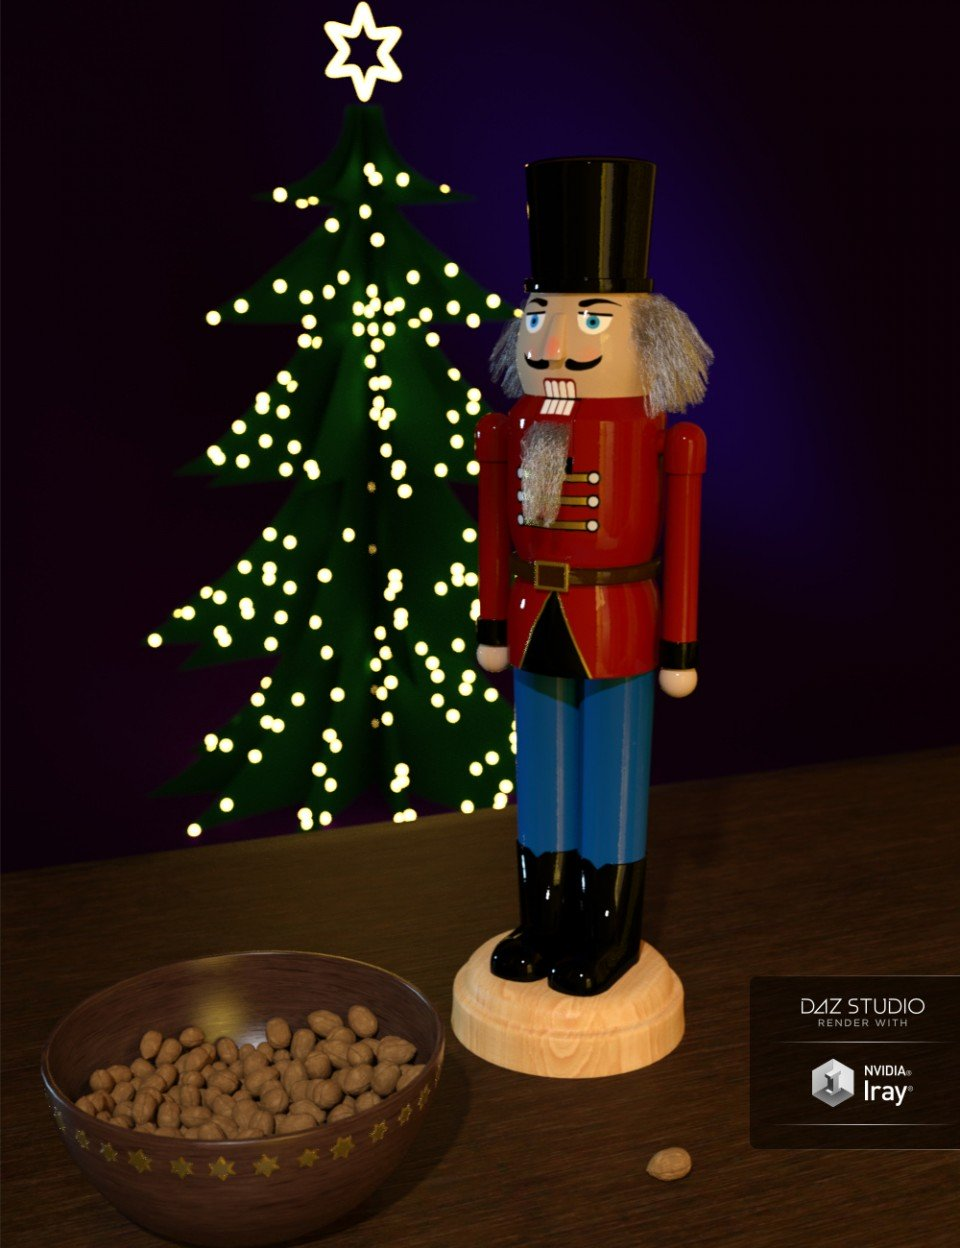 Nutcracker with Strand Based Hair and Bowl with Walnuts_DAZ3D下载站